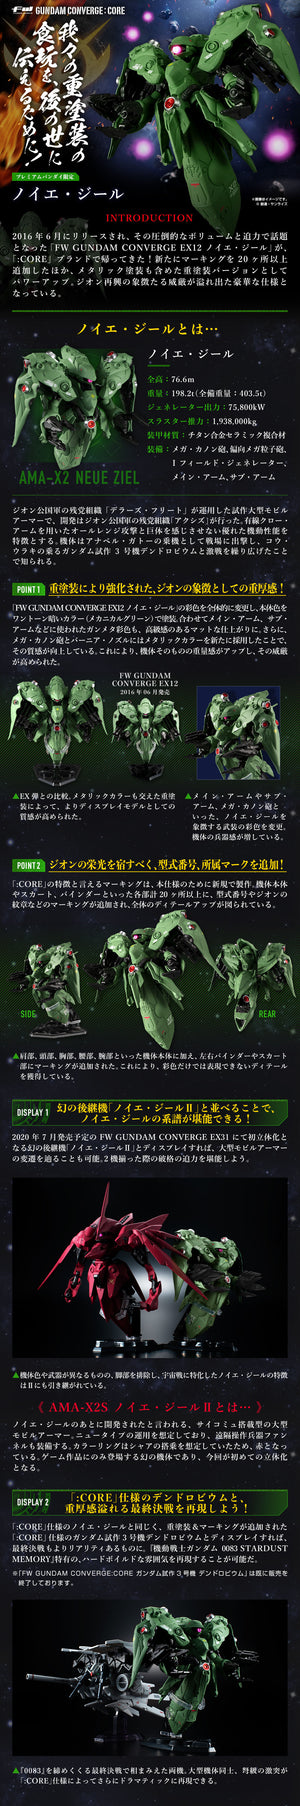 FW Gundam Converge: Core Neue Ziel (September & October Ship Date)